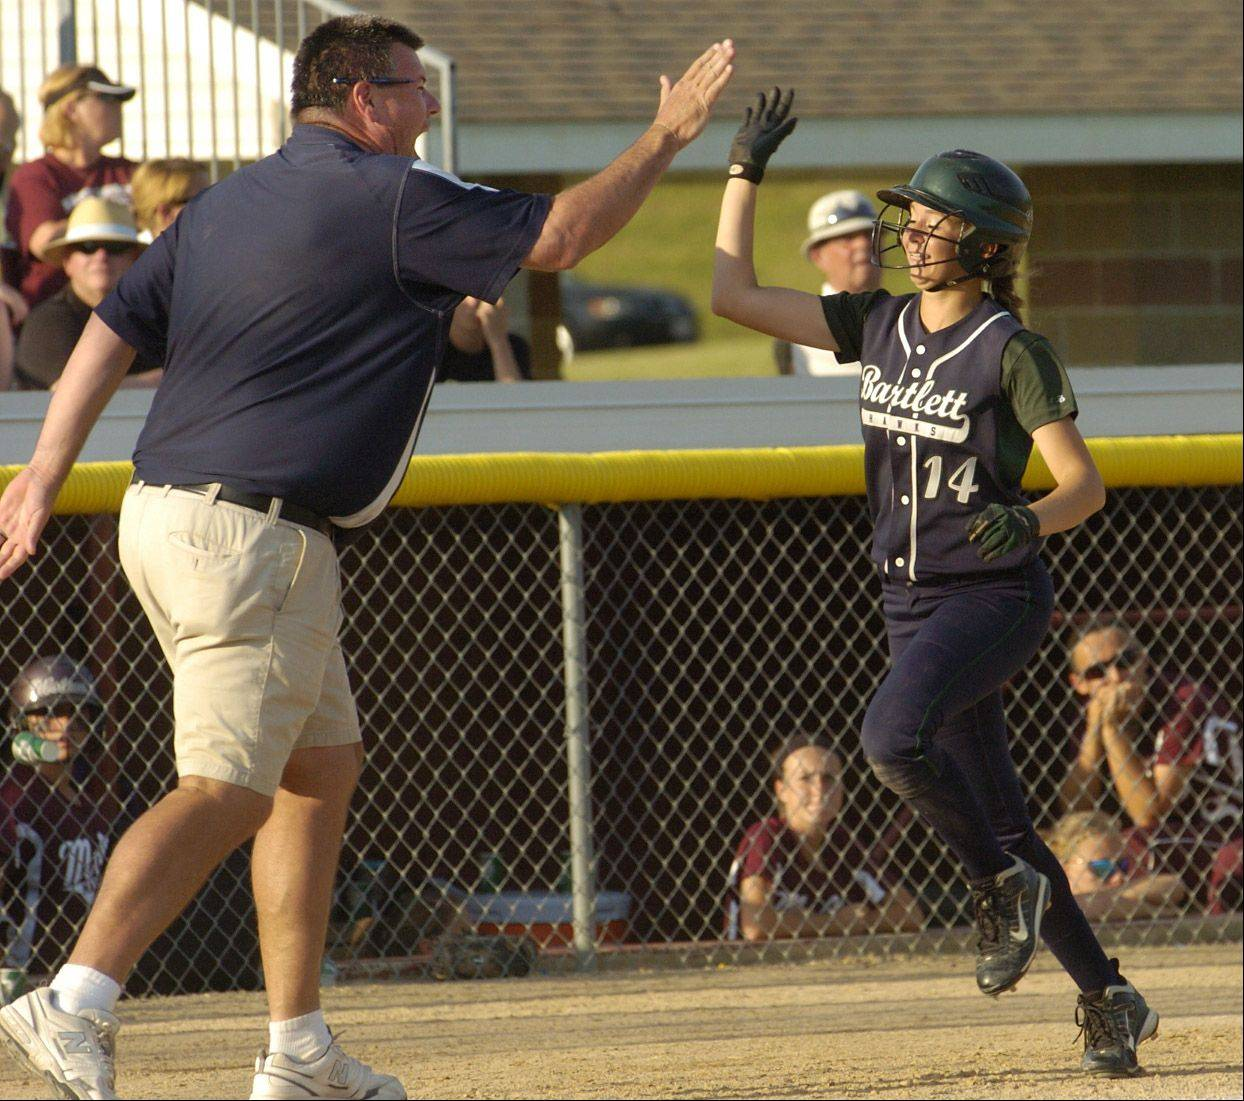 Bartlett's Alex Morales is greeted by Hawks' coach Jim Wolfsmith as she heads for home on Kayla Haberstich's home run in the seventh inning of Bartlett's Class 4A state semifinal win over Moline last season in East Peoria.